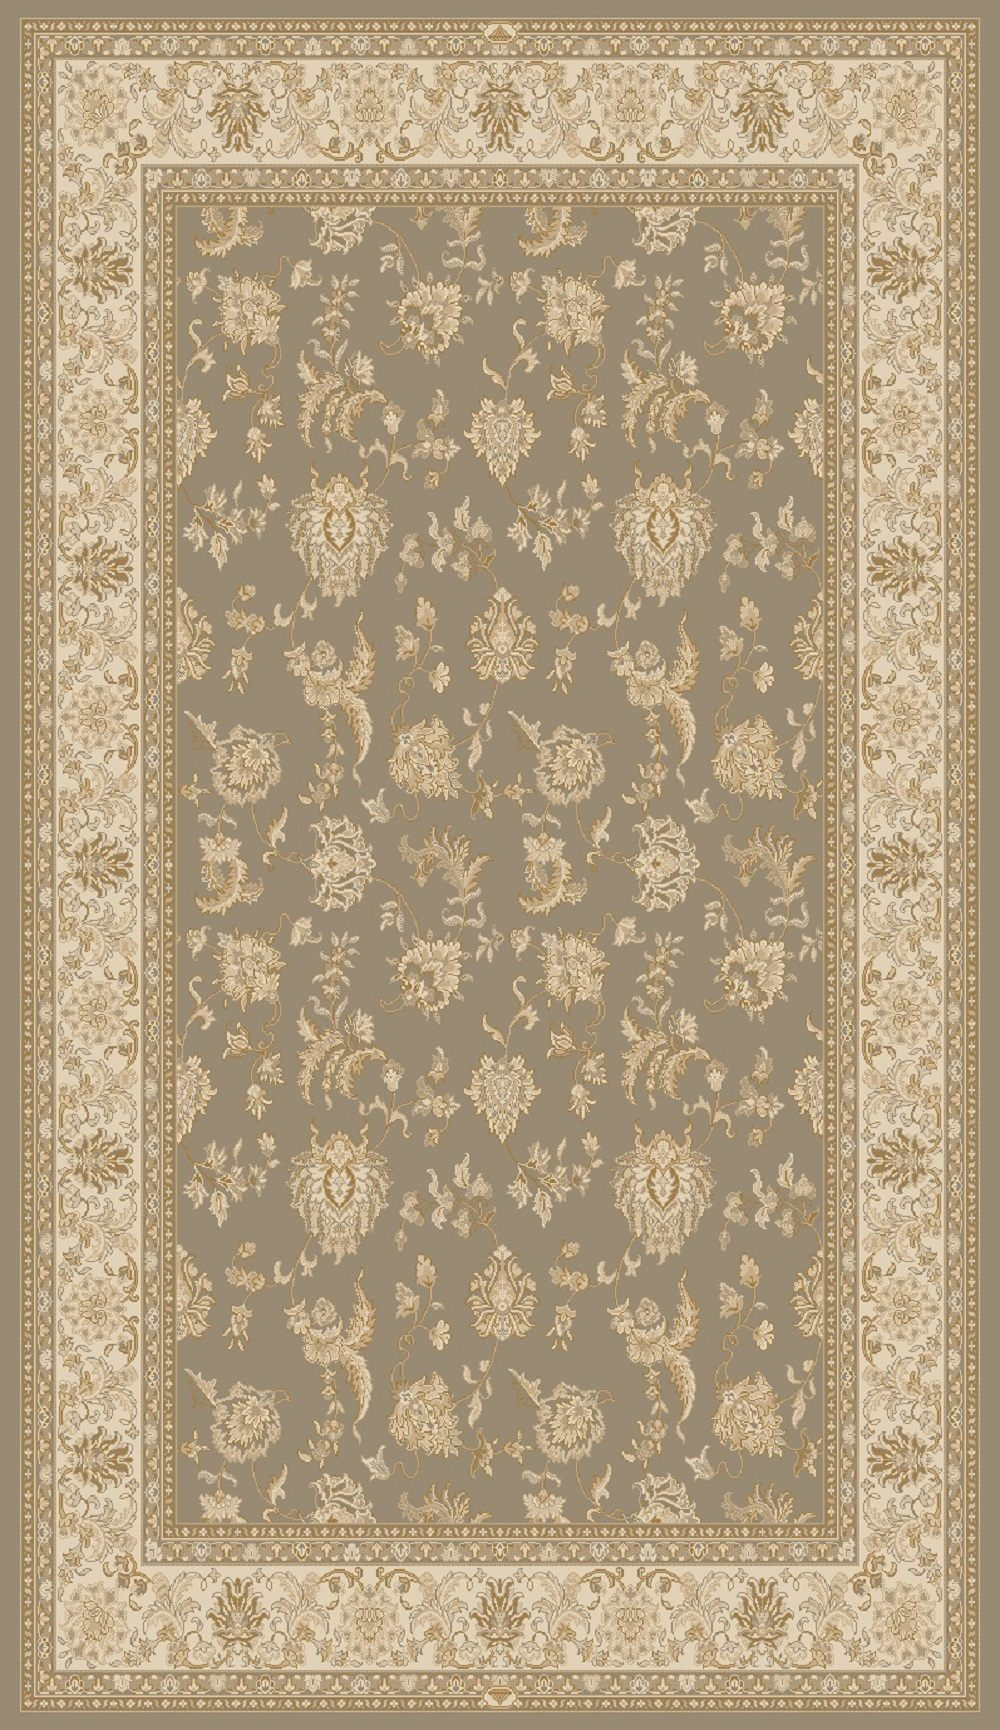 Dynamic Rugs Brilliant Classic Brown 7226 Area Rug